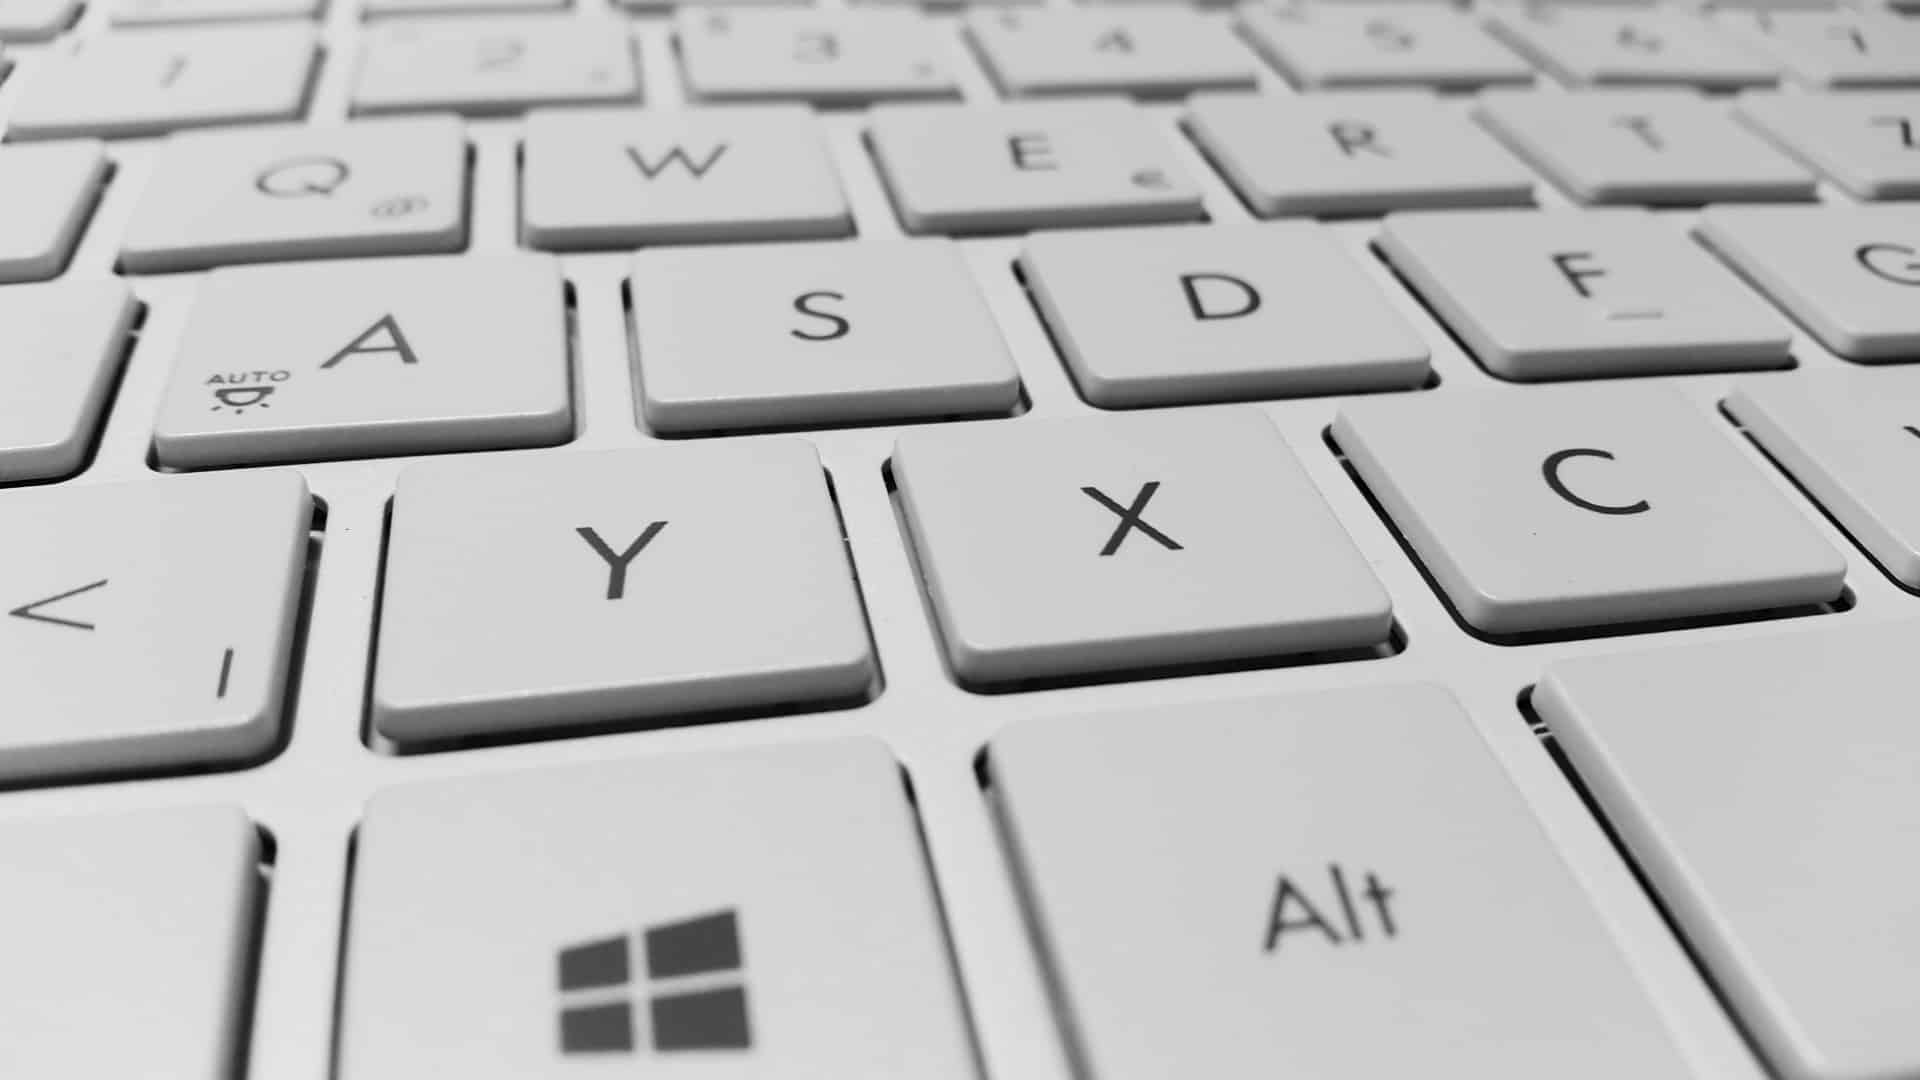 Keyboard Shortcuts for Modeling Real Estate in Excel - A CRE